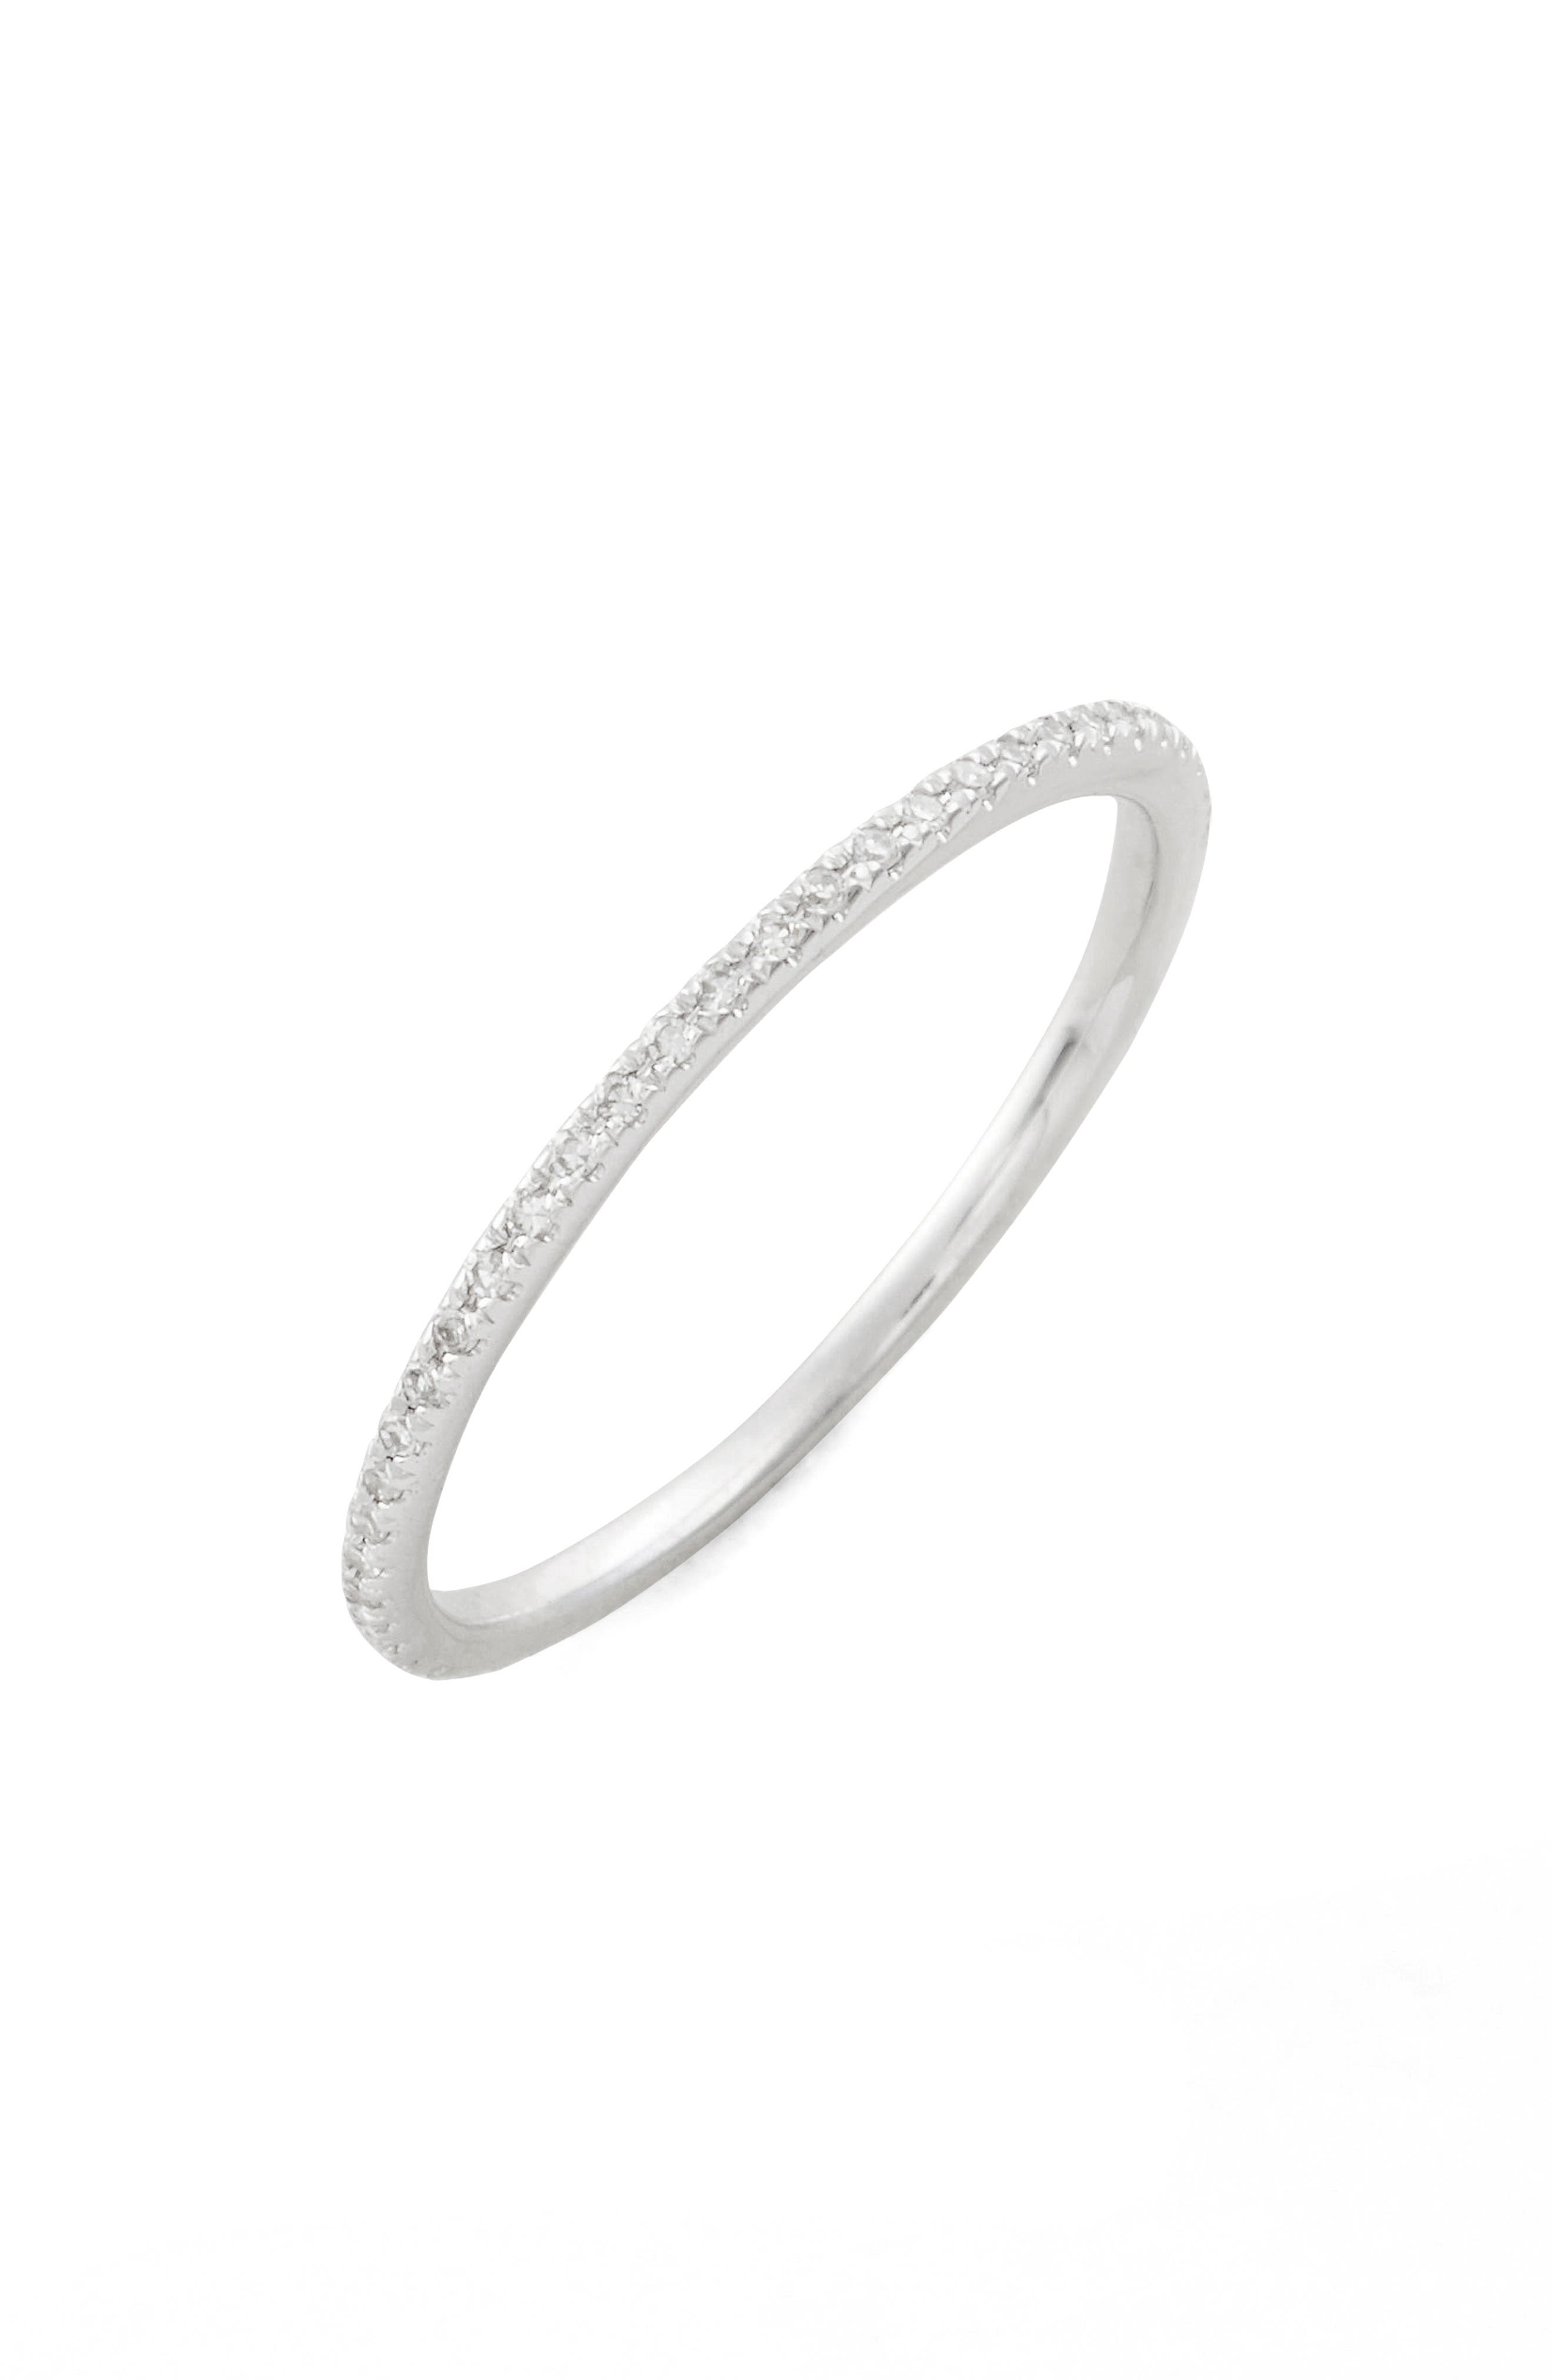 Main Image - EF COLLECTION Two-Tone Diamond Stack Ring